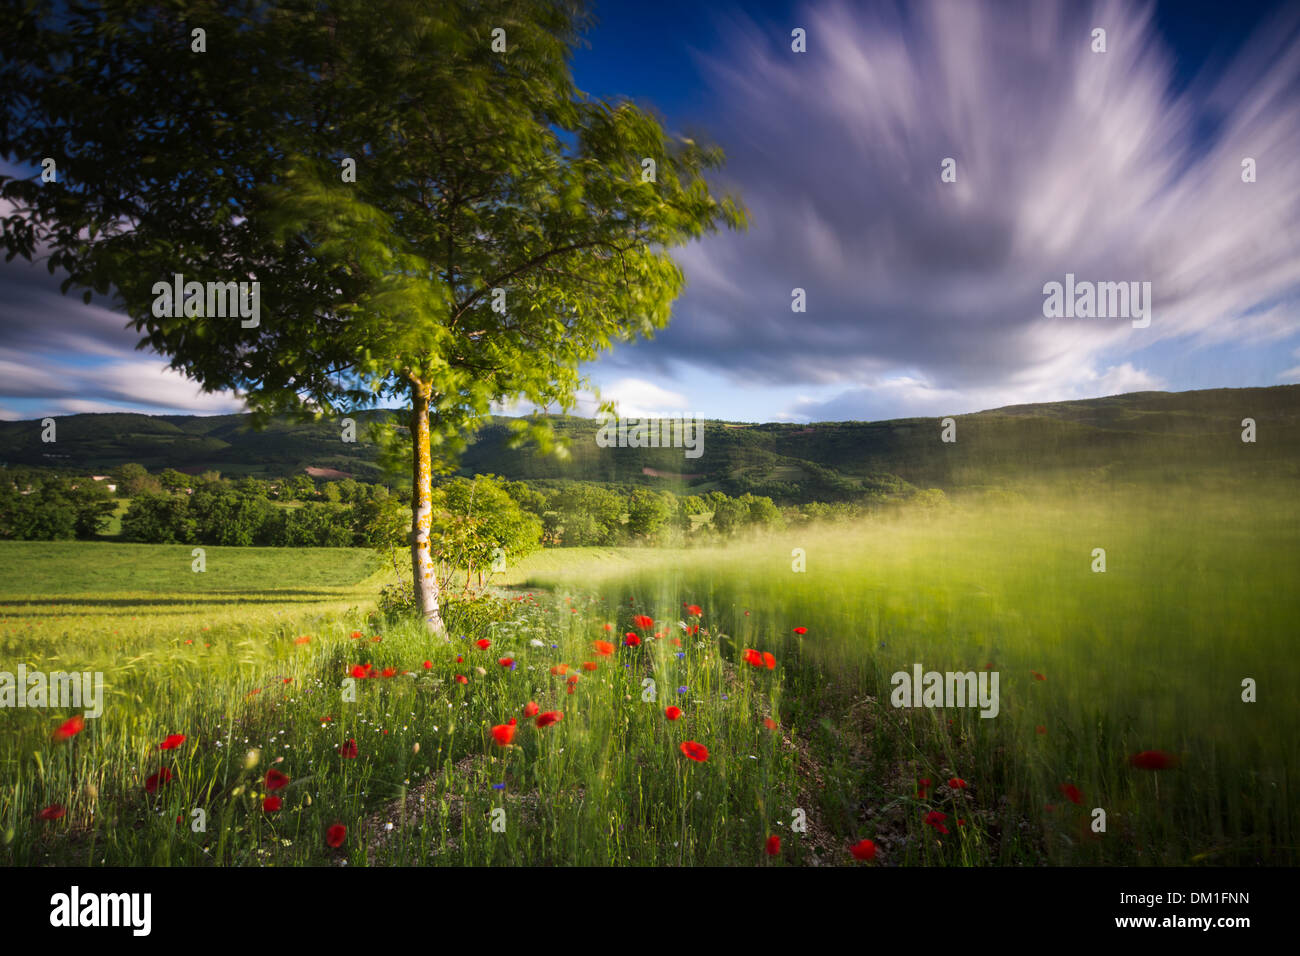 poppies in a field of barley near Campi, Valnerina, Umbria, Italy - Stock Image